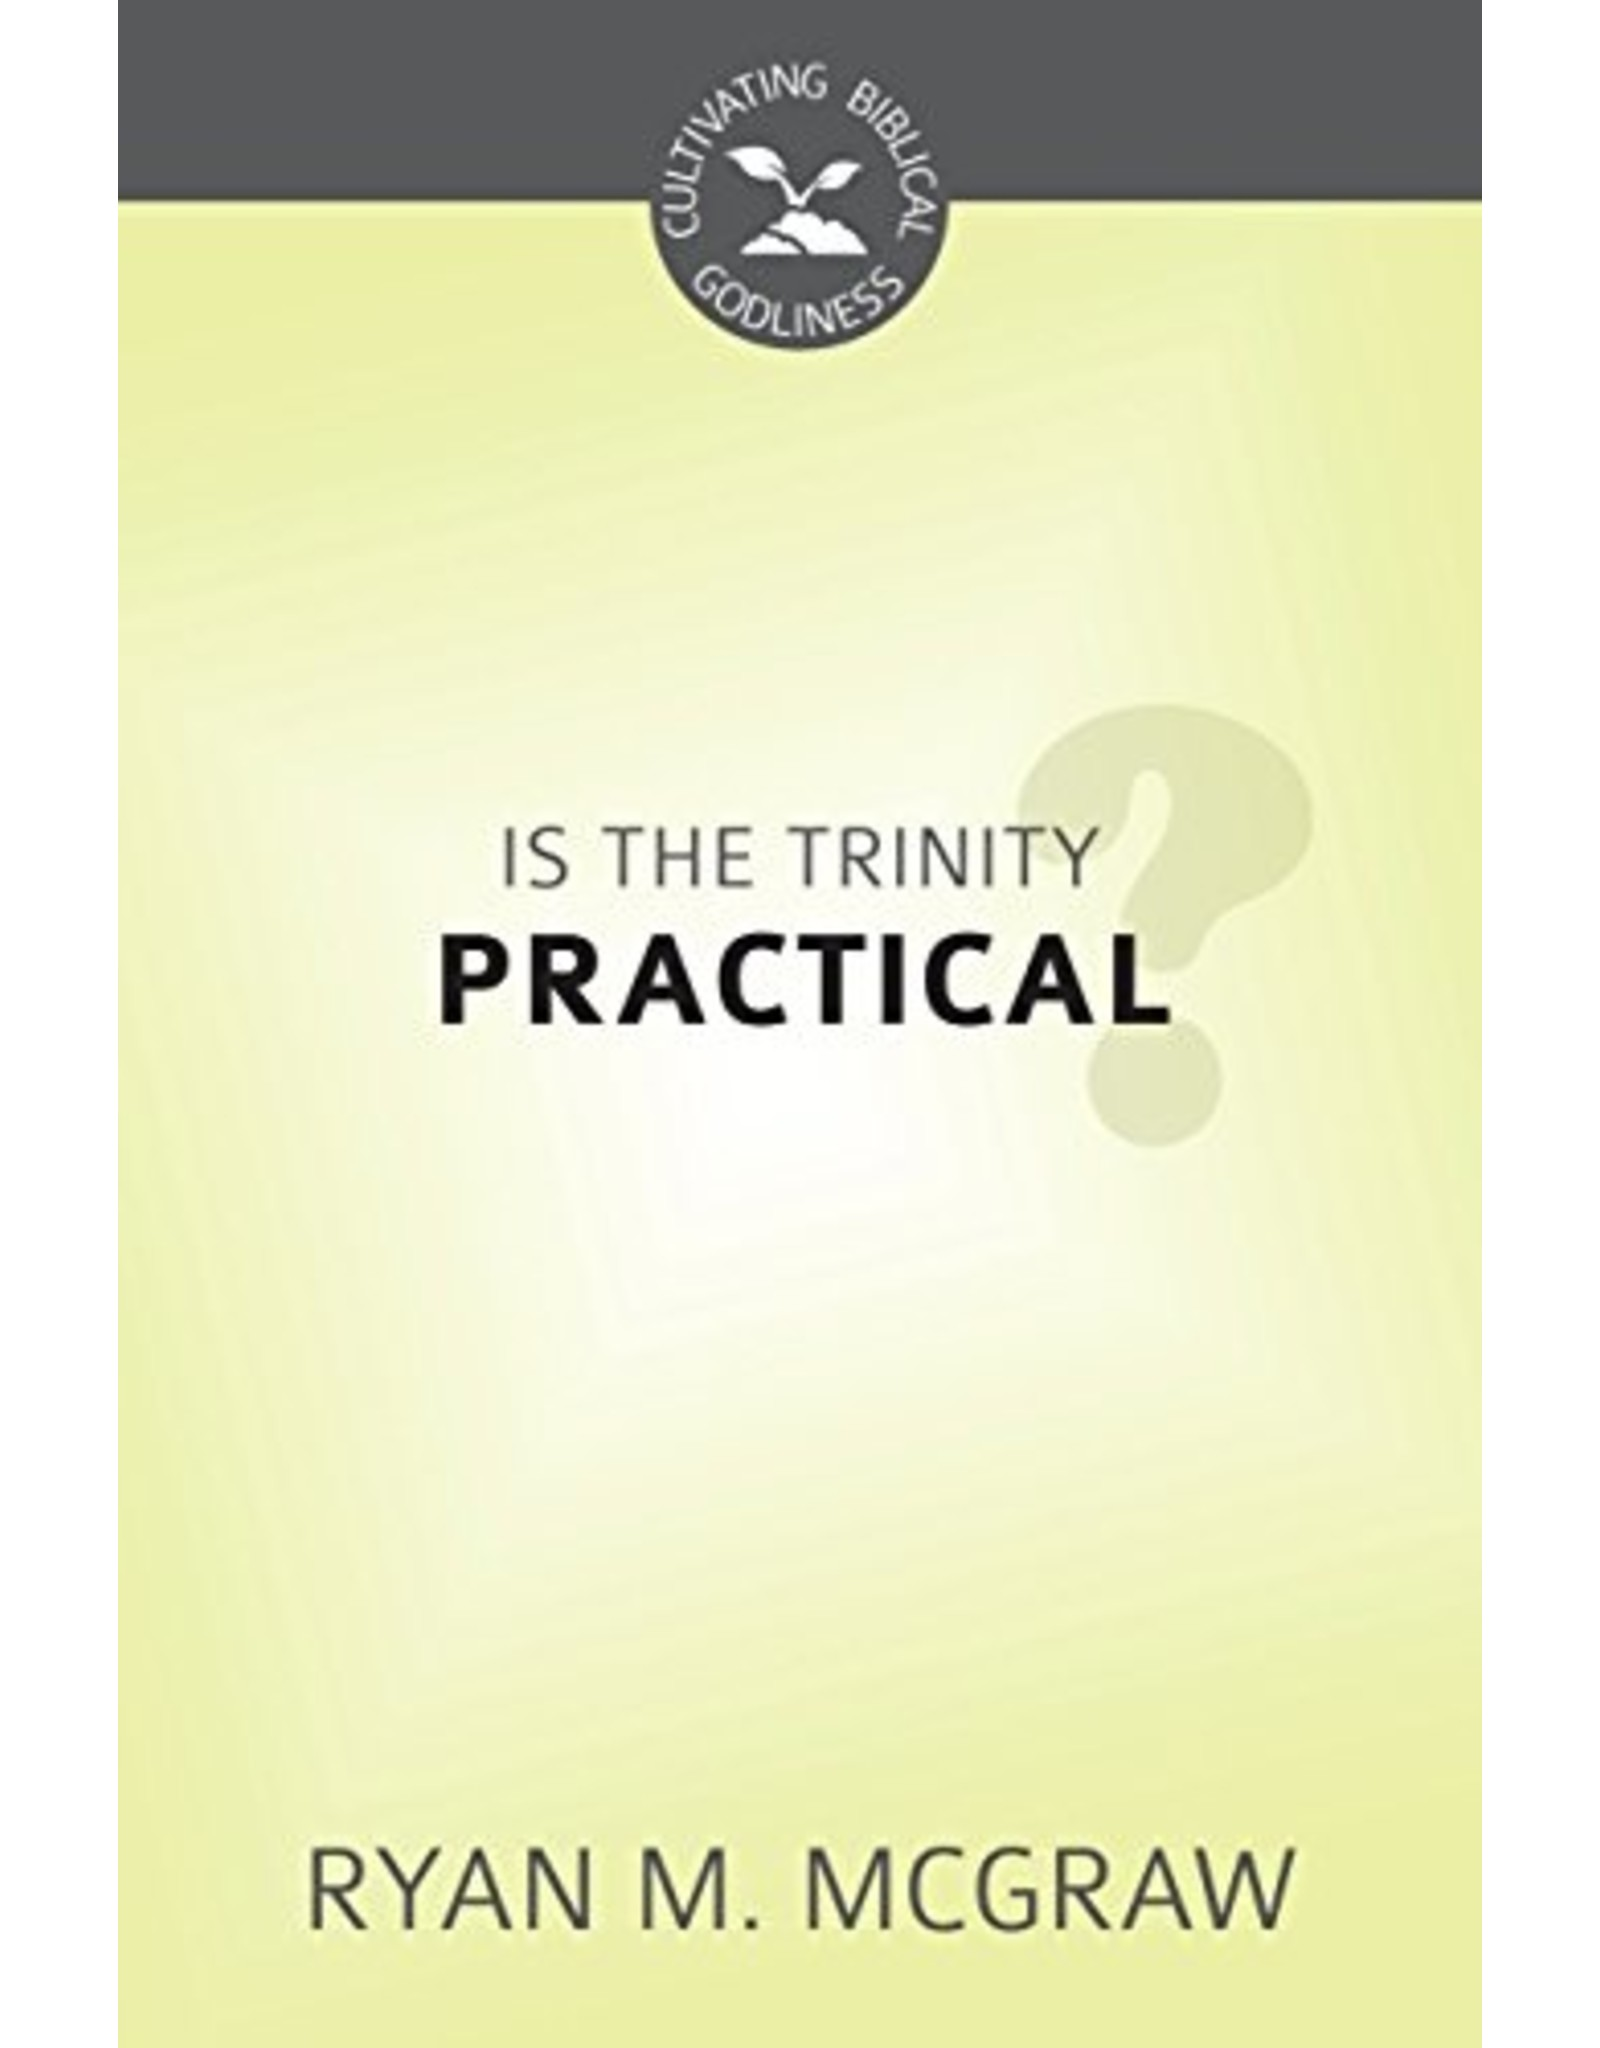 McGraw Is the Trinity Practical